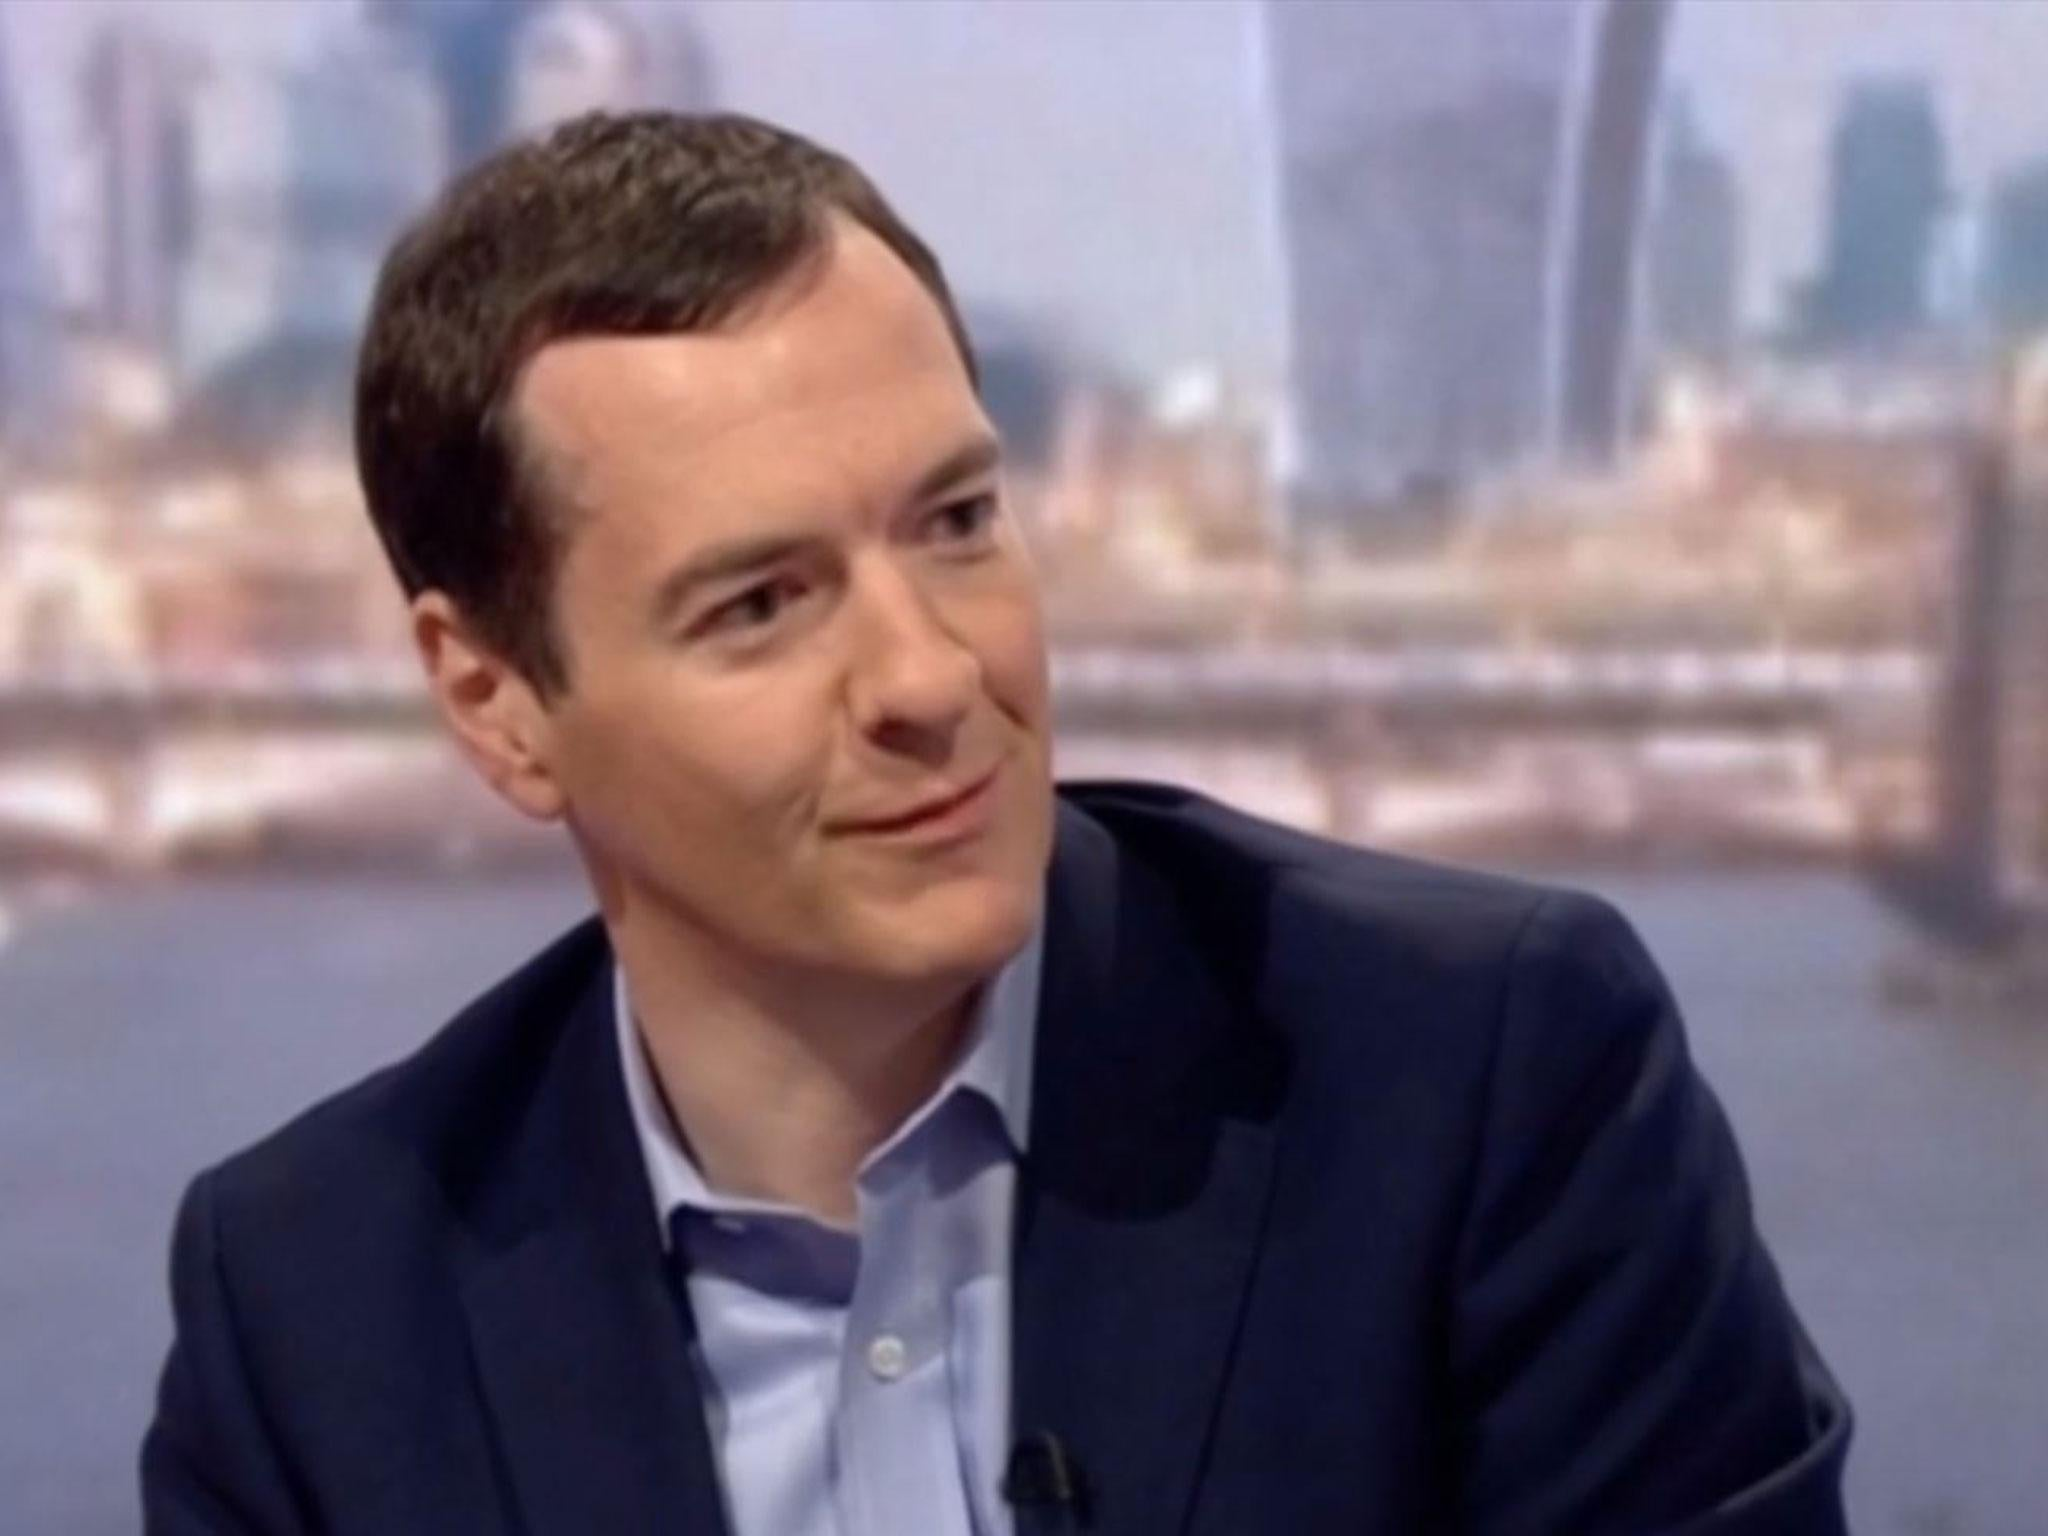 Revoking Article 50 and scrapping Brexit could be only way to escape Theresa May's 'car crash', George Osborne says